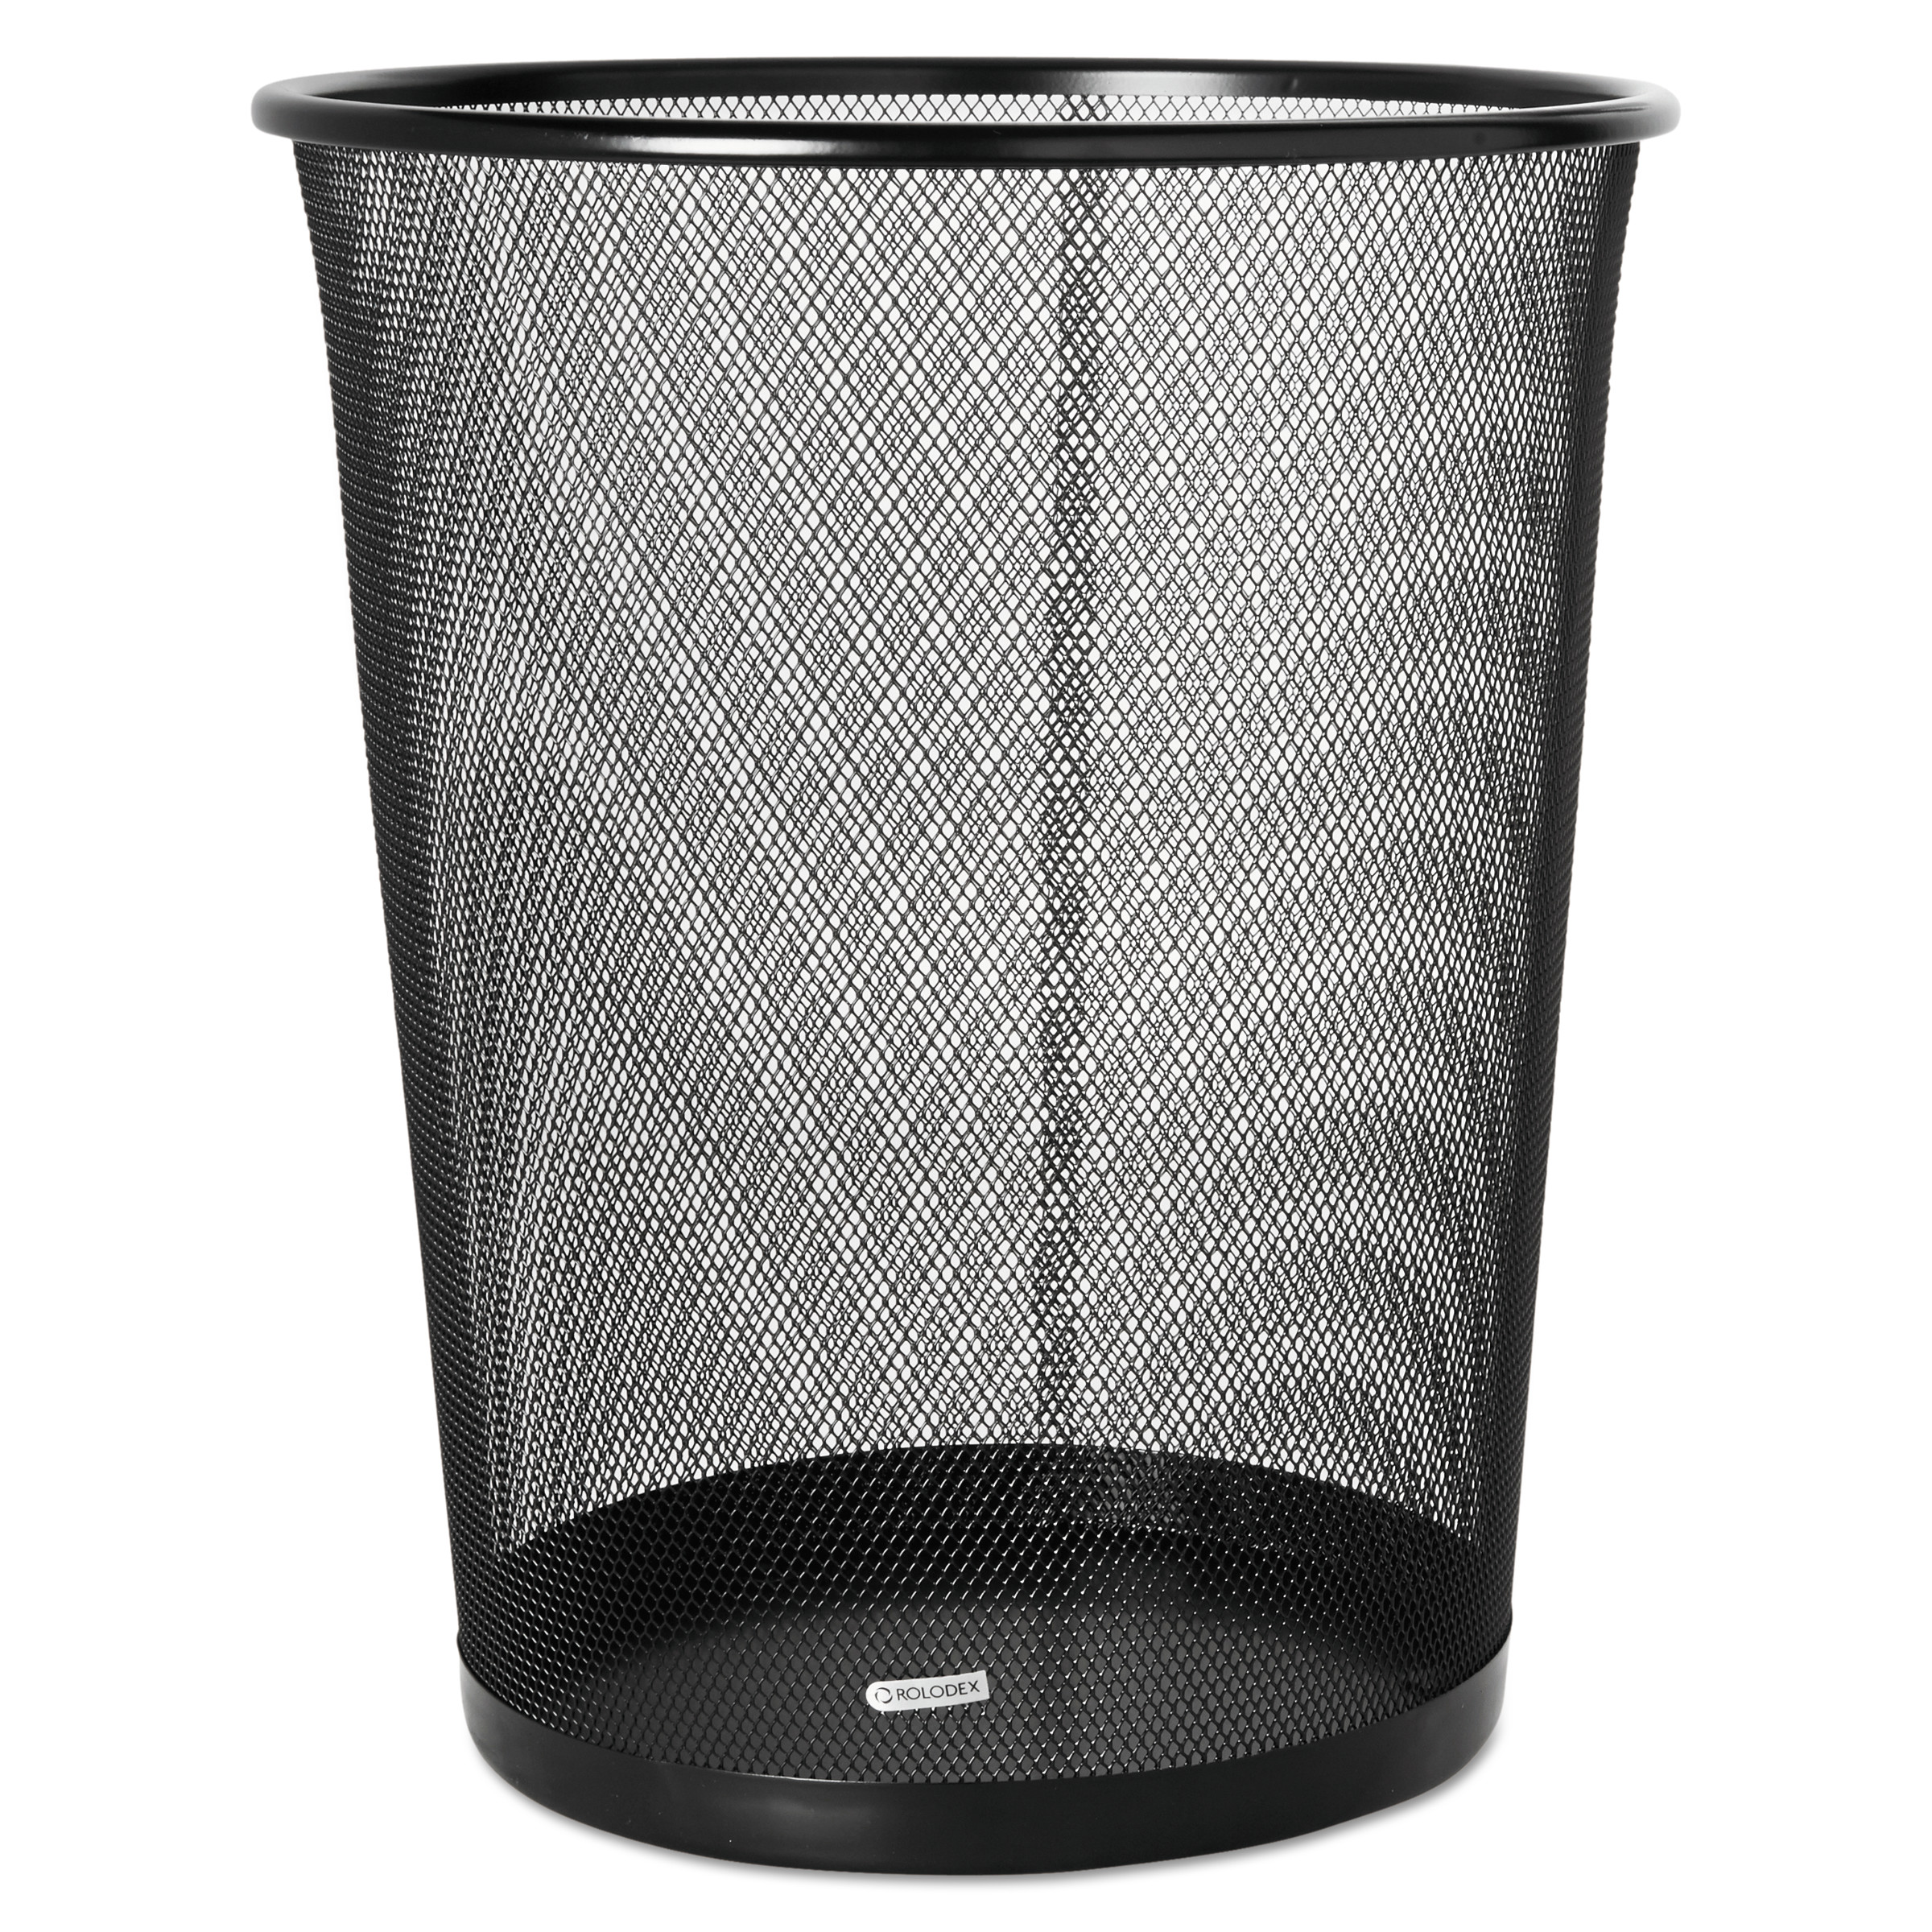 Rolodex 4 1/2 Gallon Steel Black Round Mesh Trash Can -ROL22351